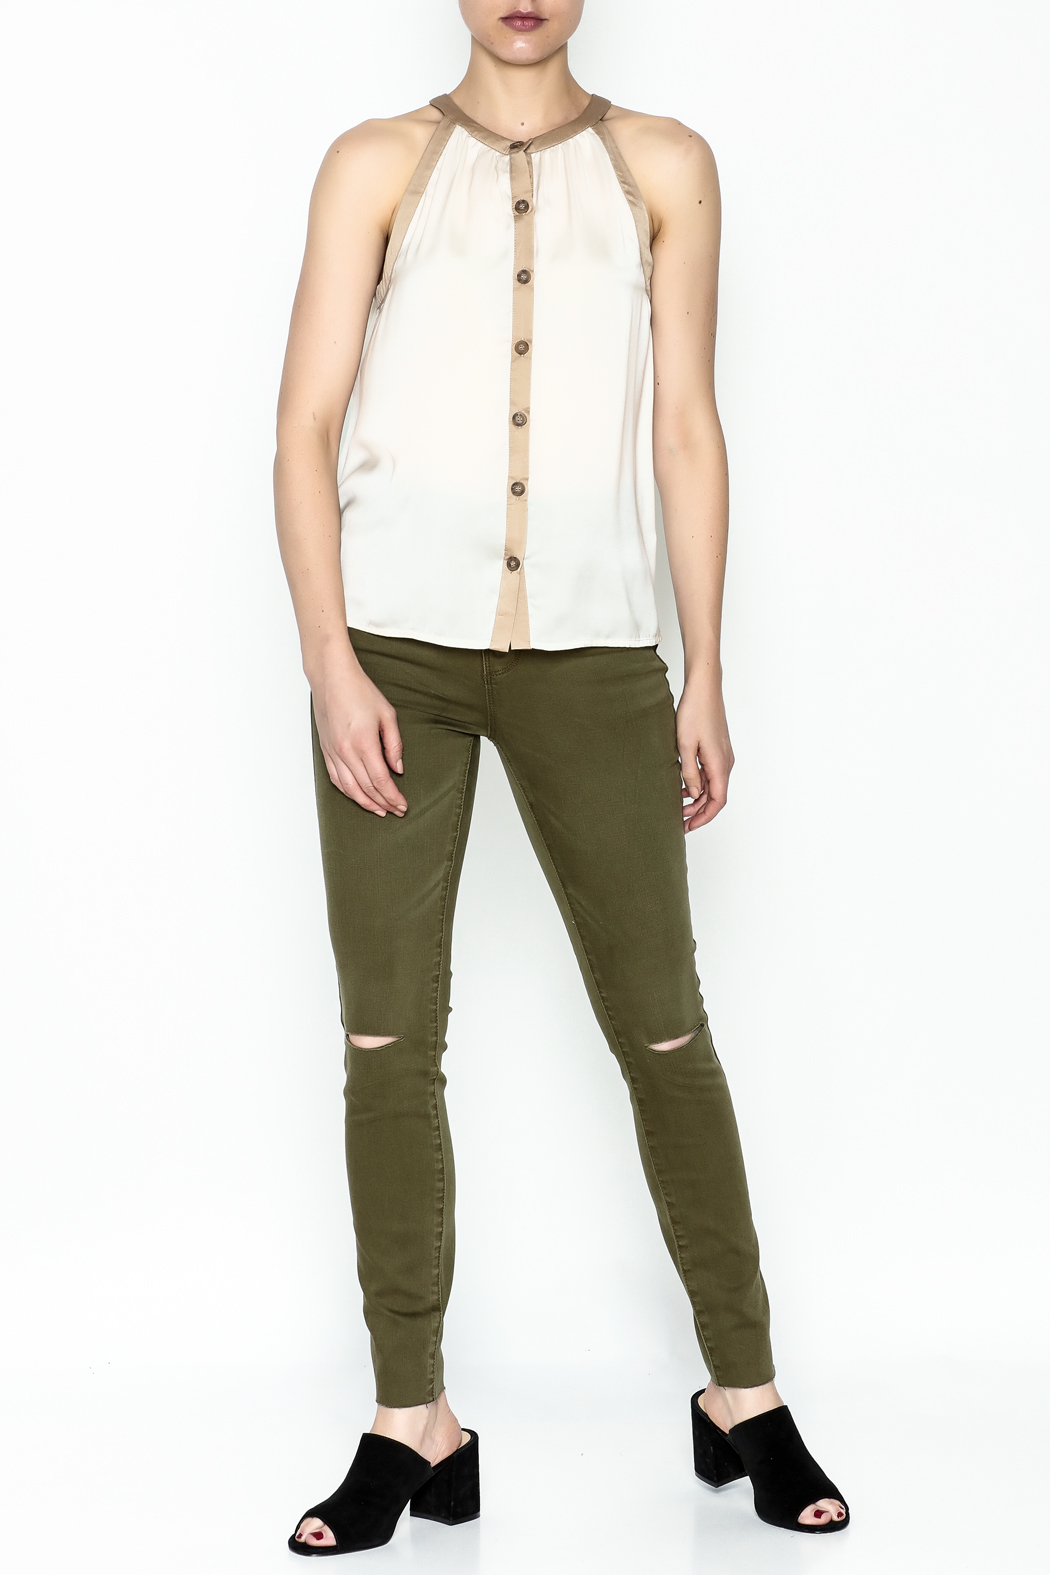 Kensie Matteford Chiffon Top - Side Cropped Image